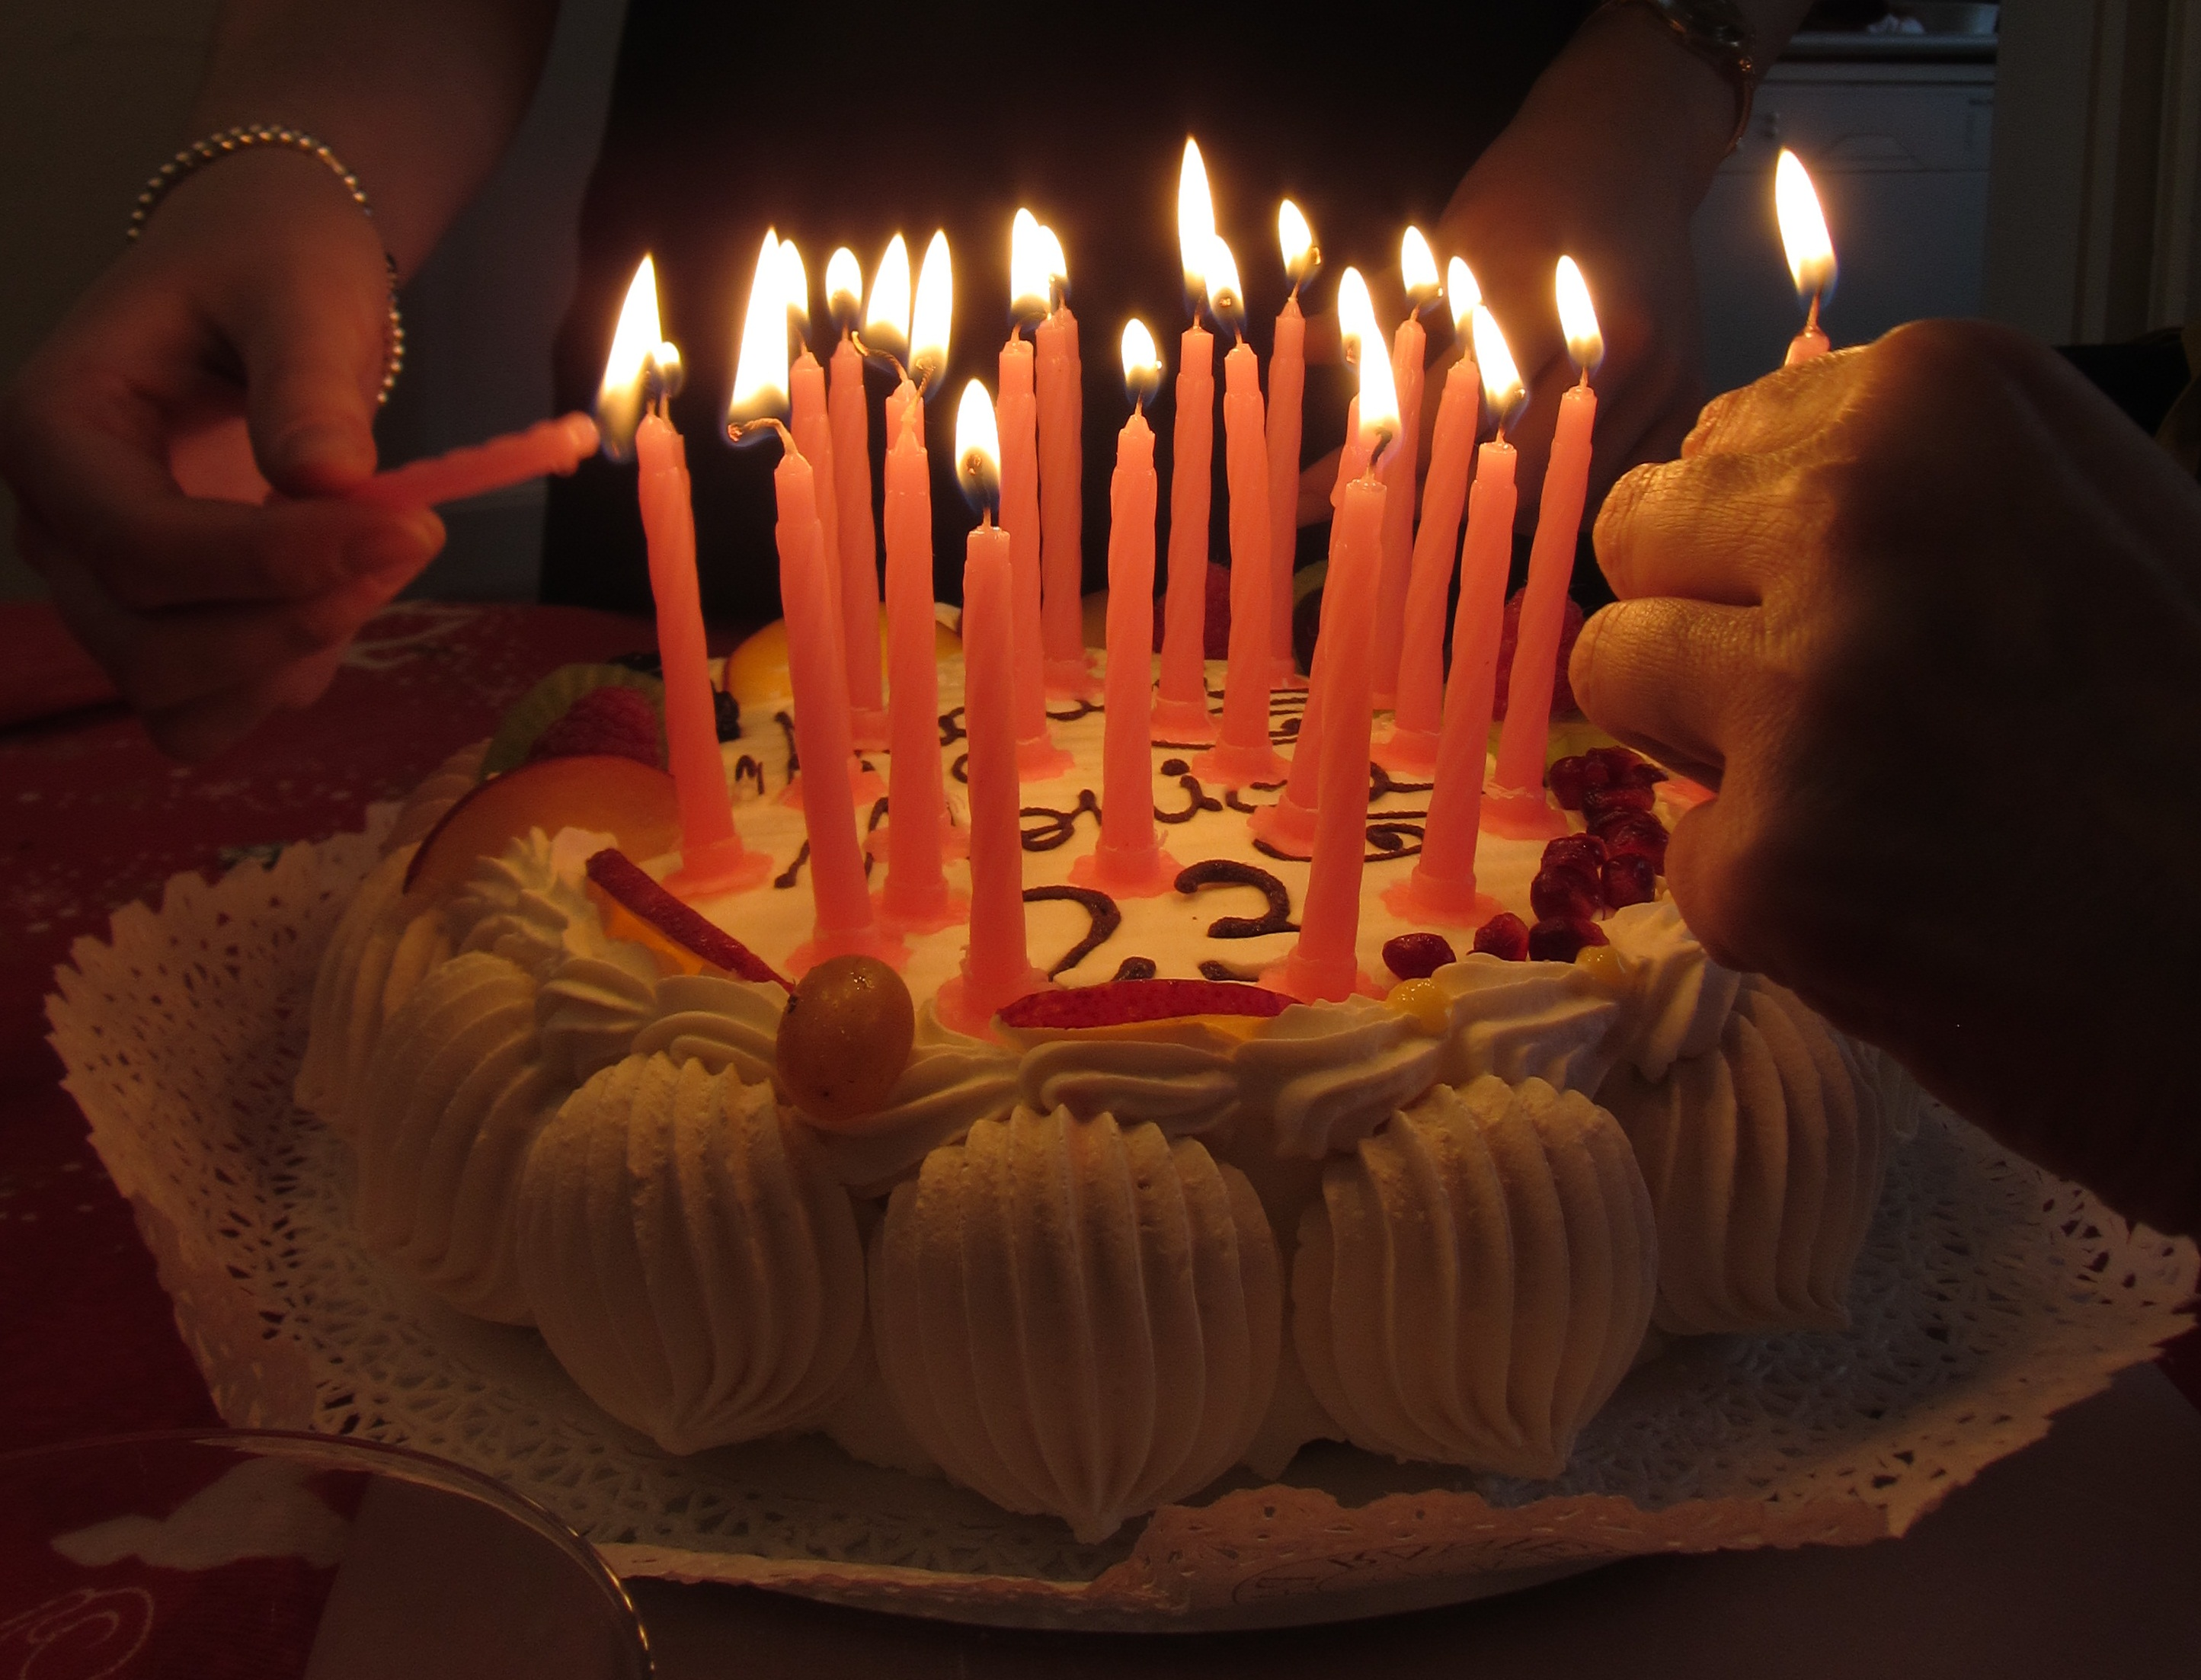 FileItaly birthday cake with candles 3jpg Wikimedia Commons